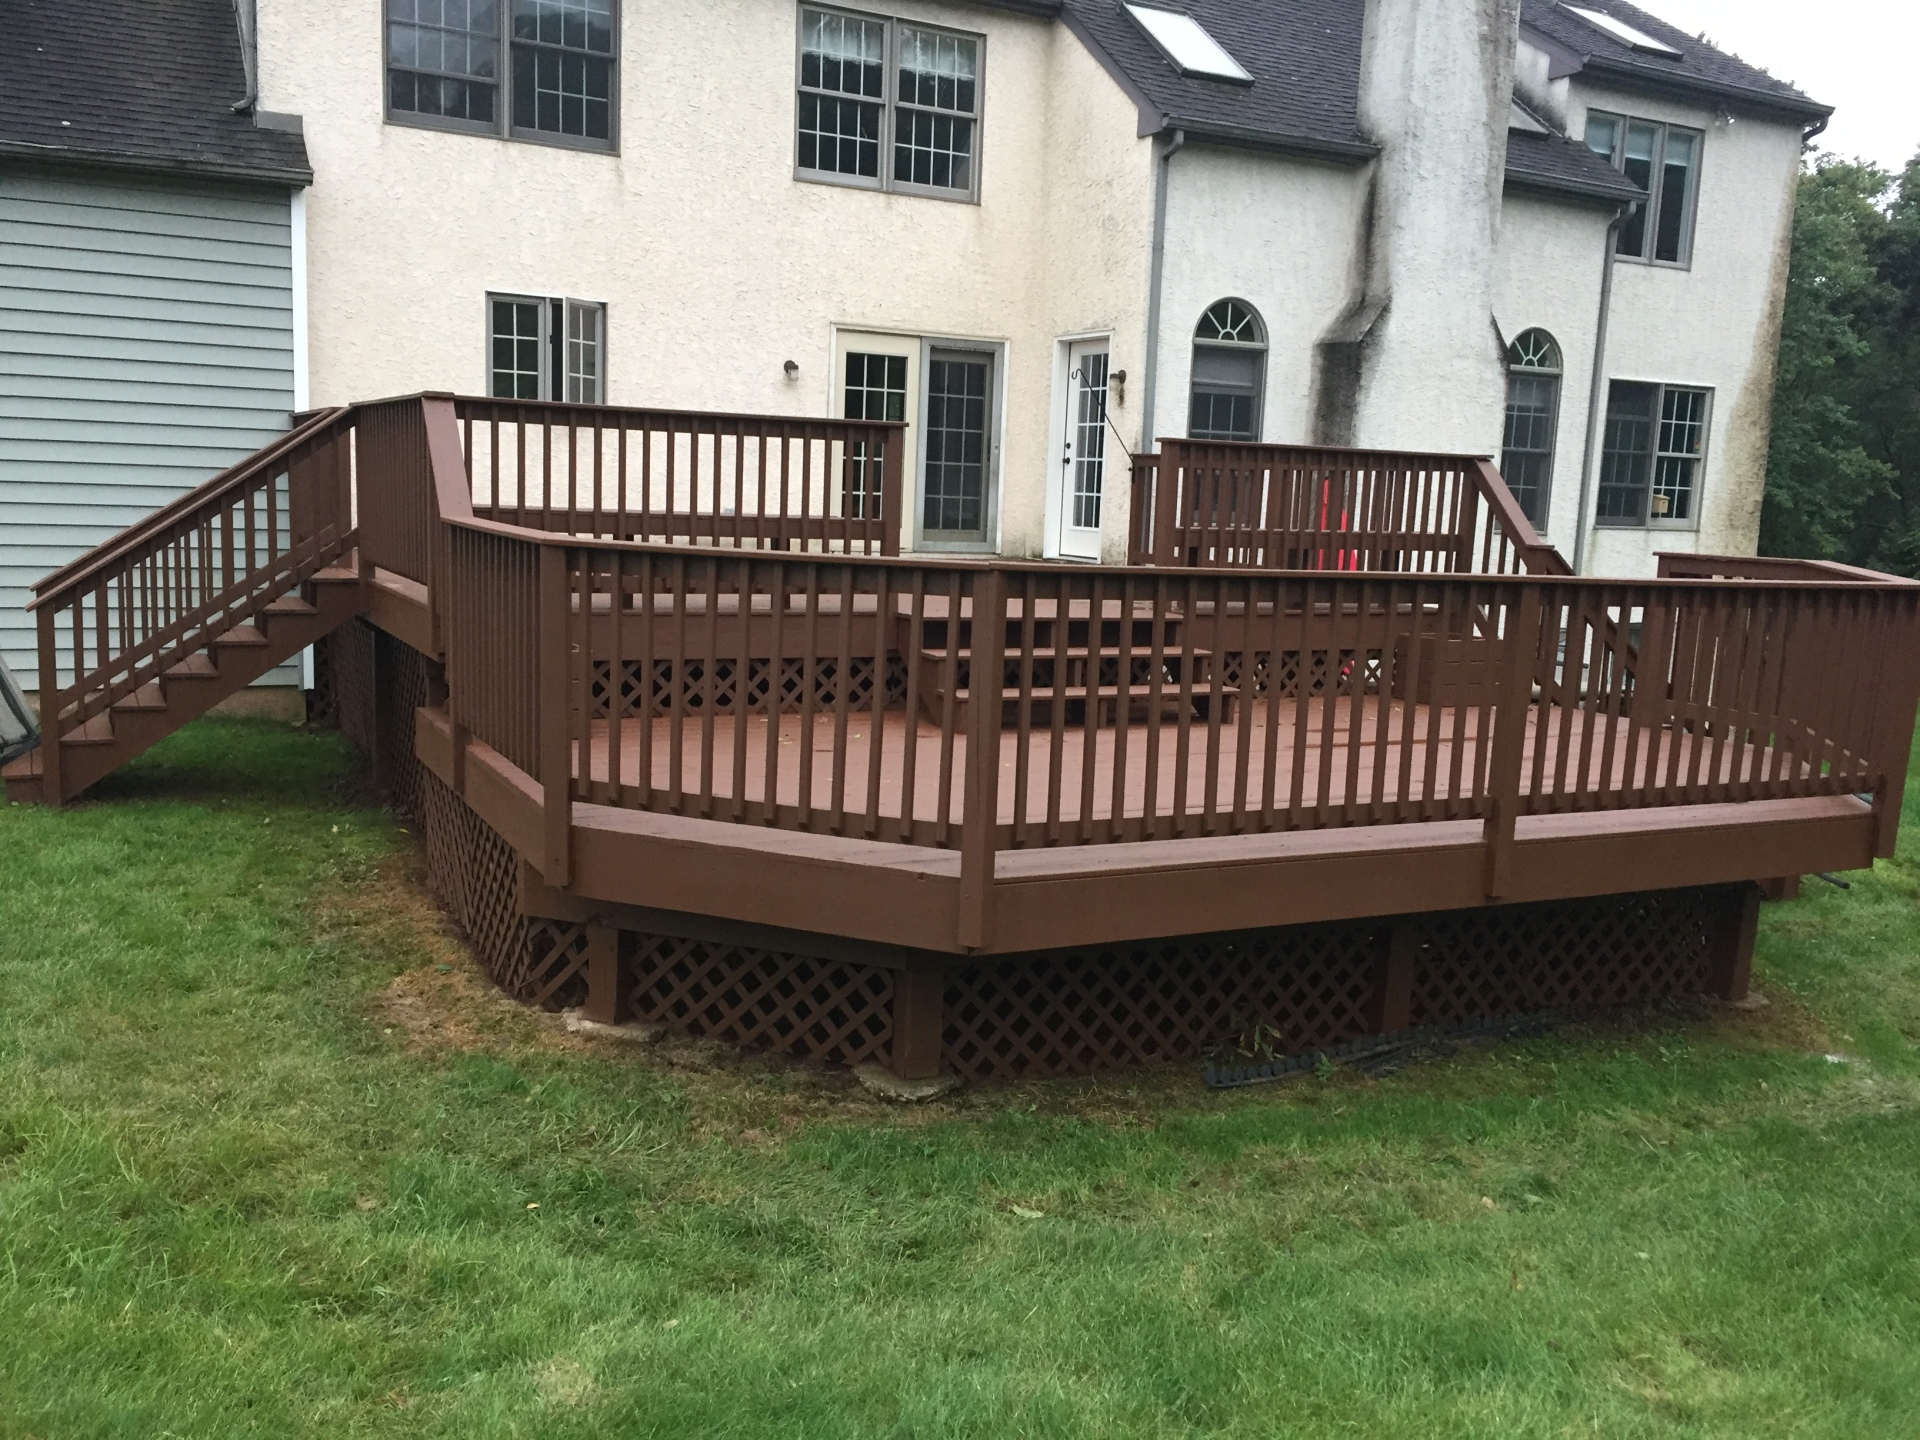 decks power washed and stained.